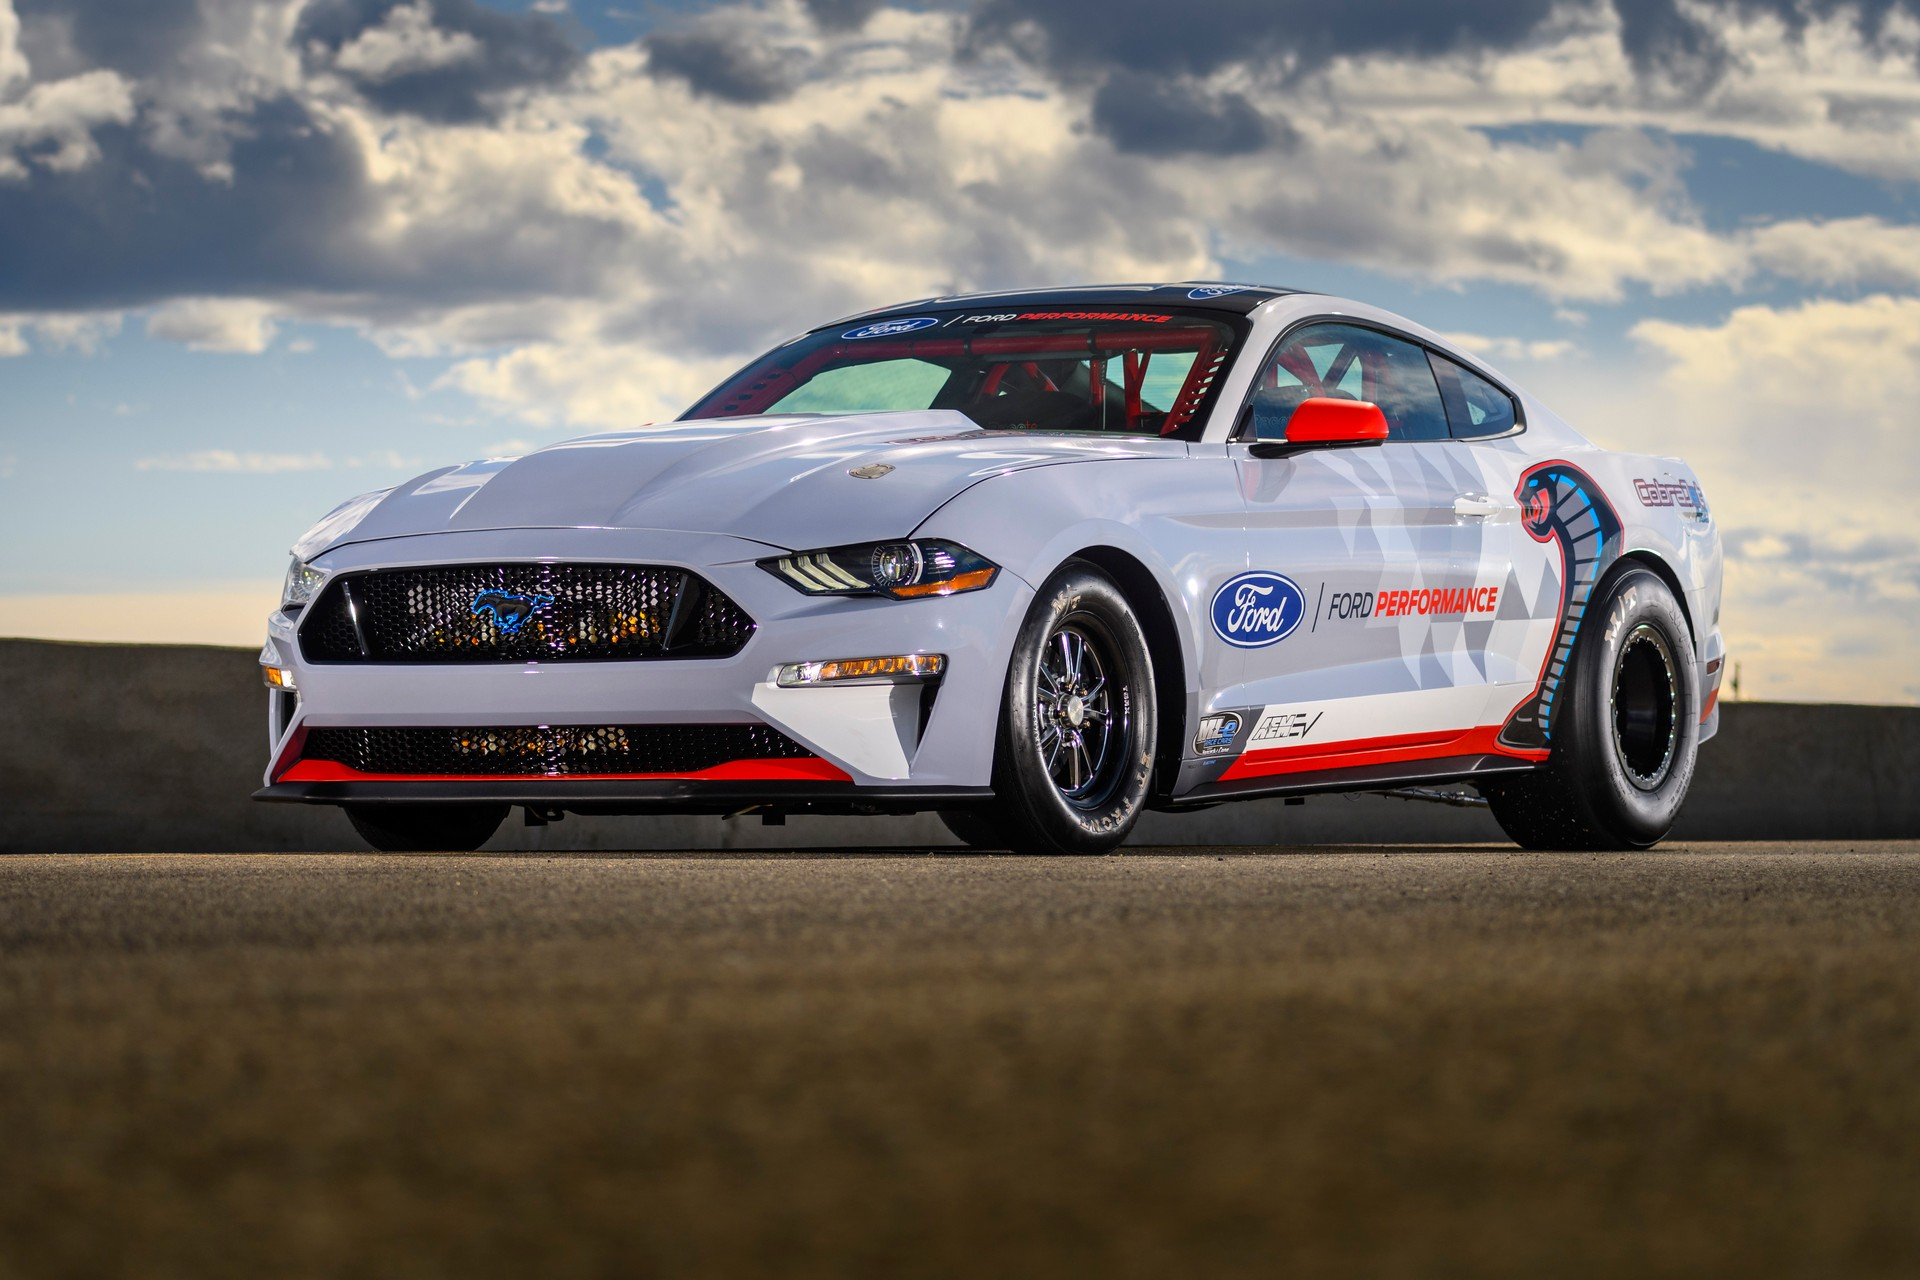 Electric-Ford-Mustang-Cobra-Jet-Prototype-3